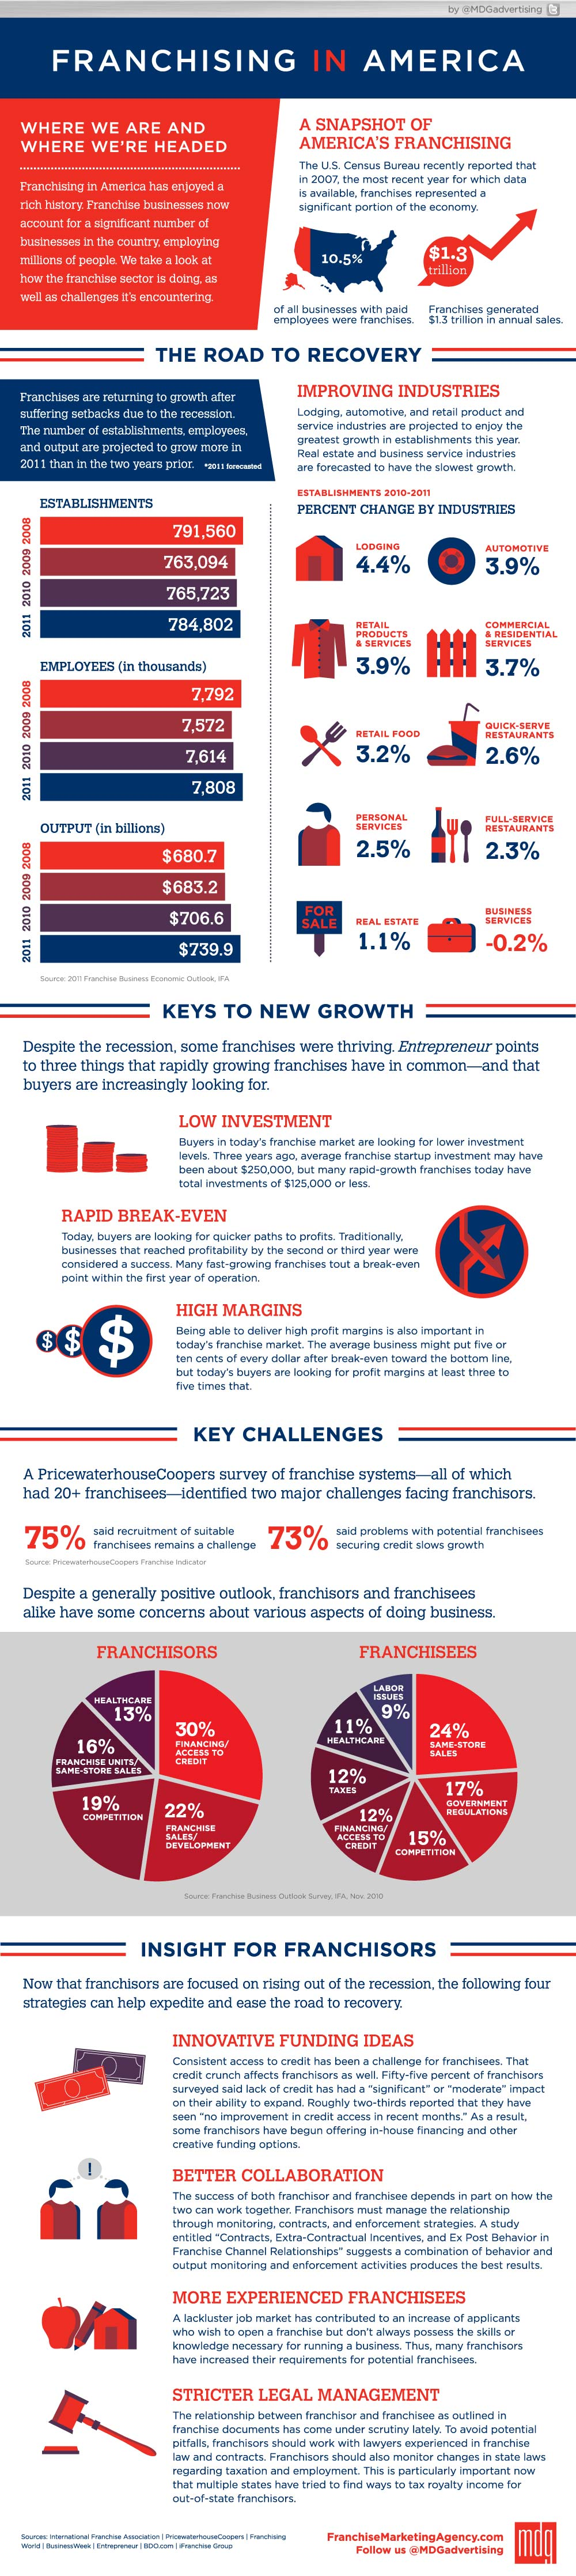 [Infographic]: Franchising In America